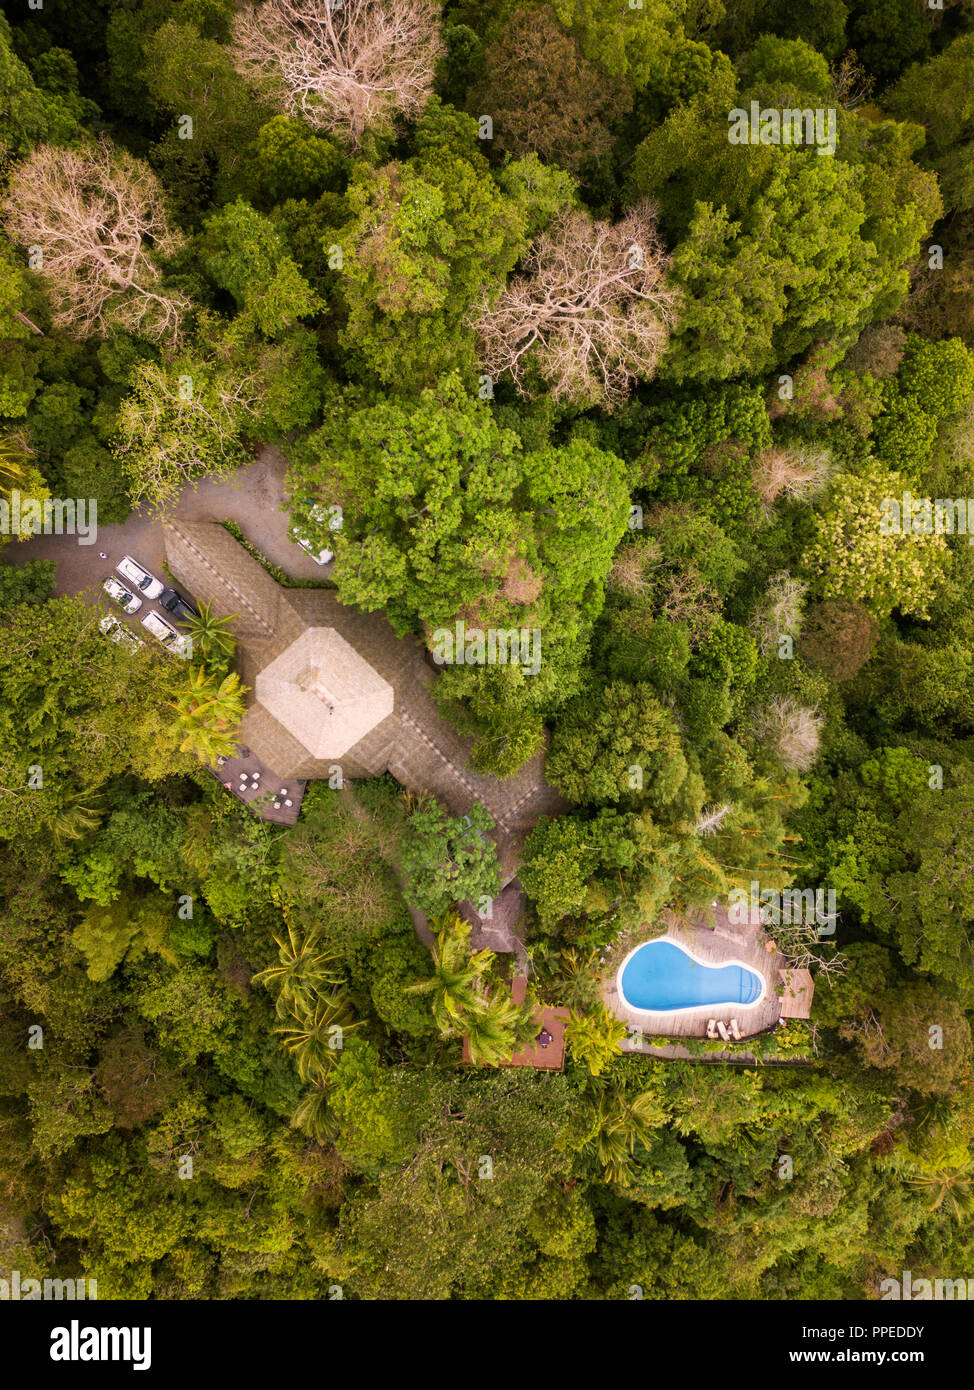 Guesthouse, Tortuguero National Park, Costa Rica - Stock Image